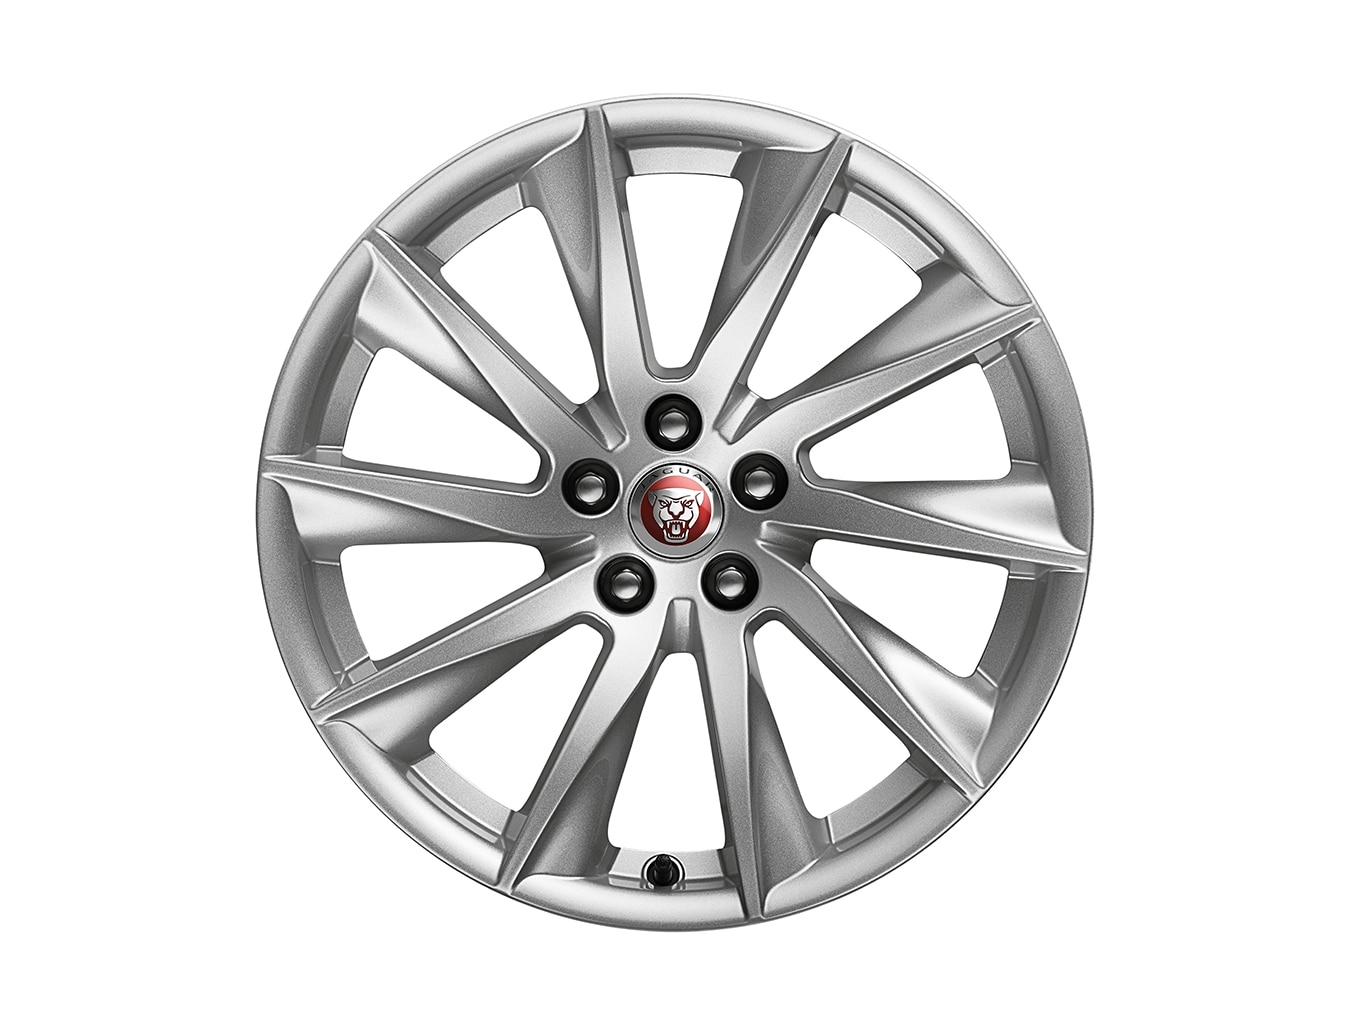 "Alloy Wheel - 18"" Style 1024, 10 spoke, Rear"